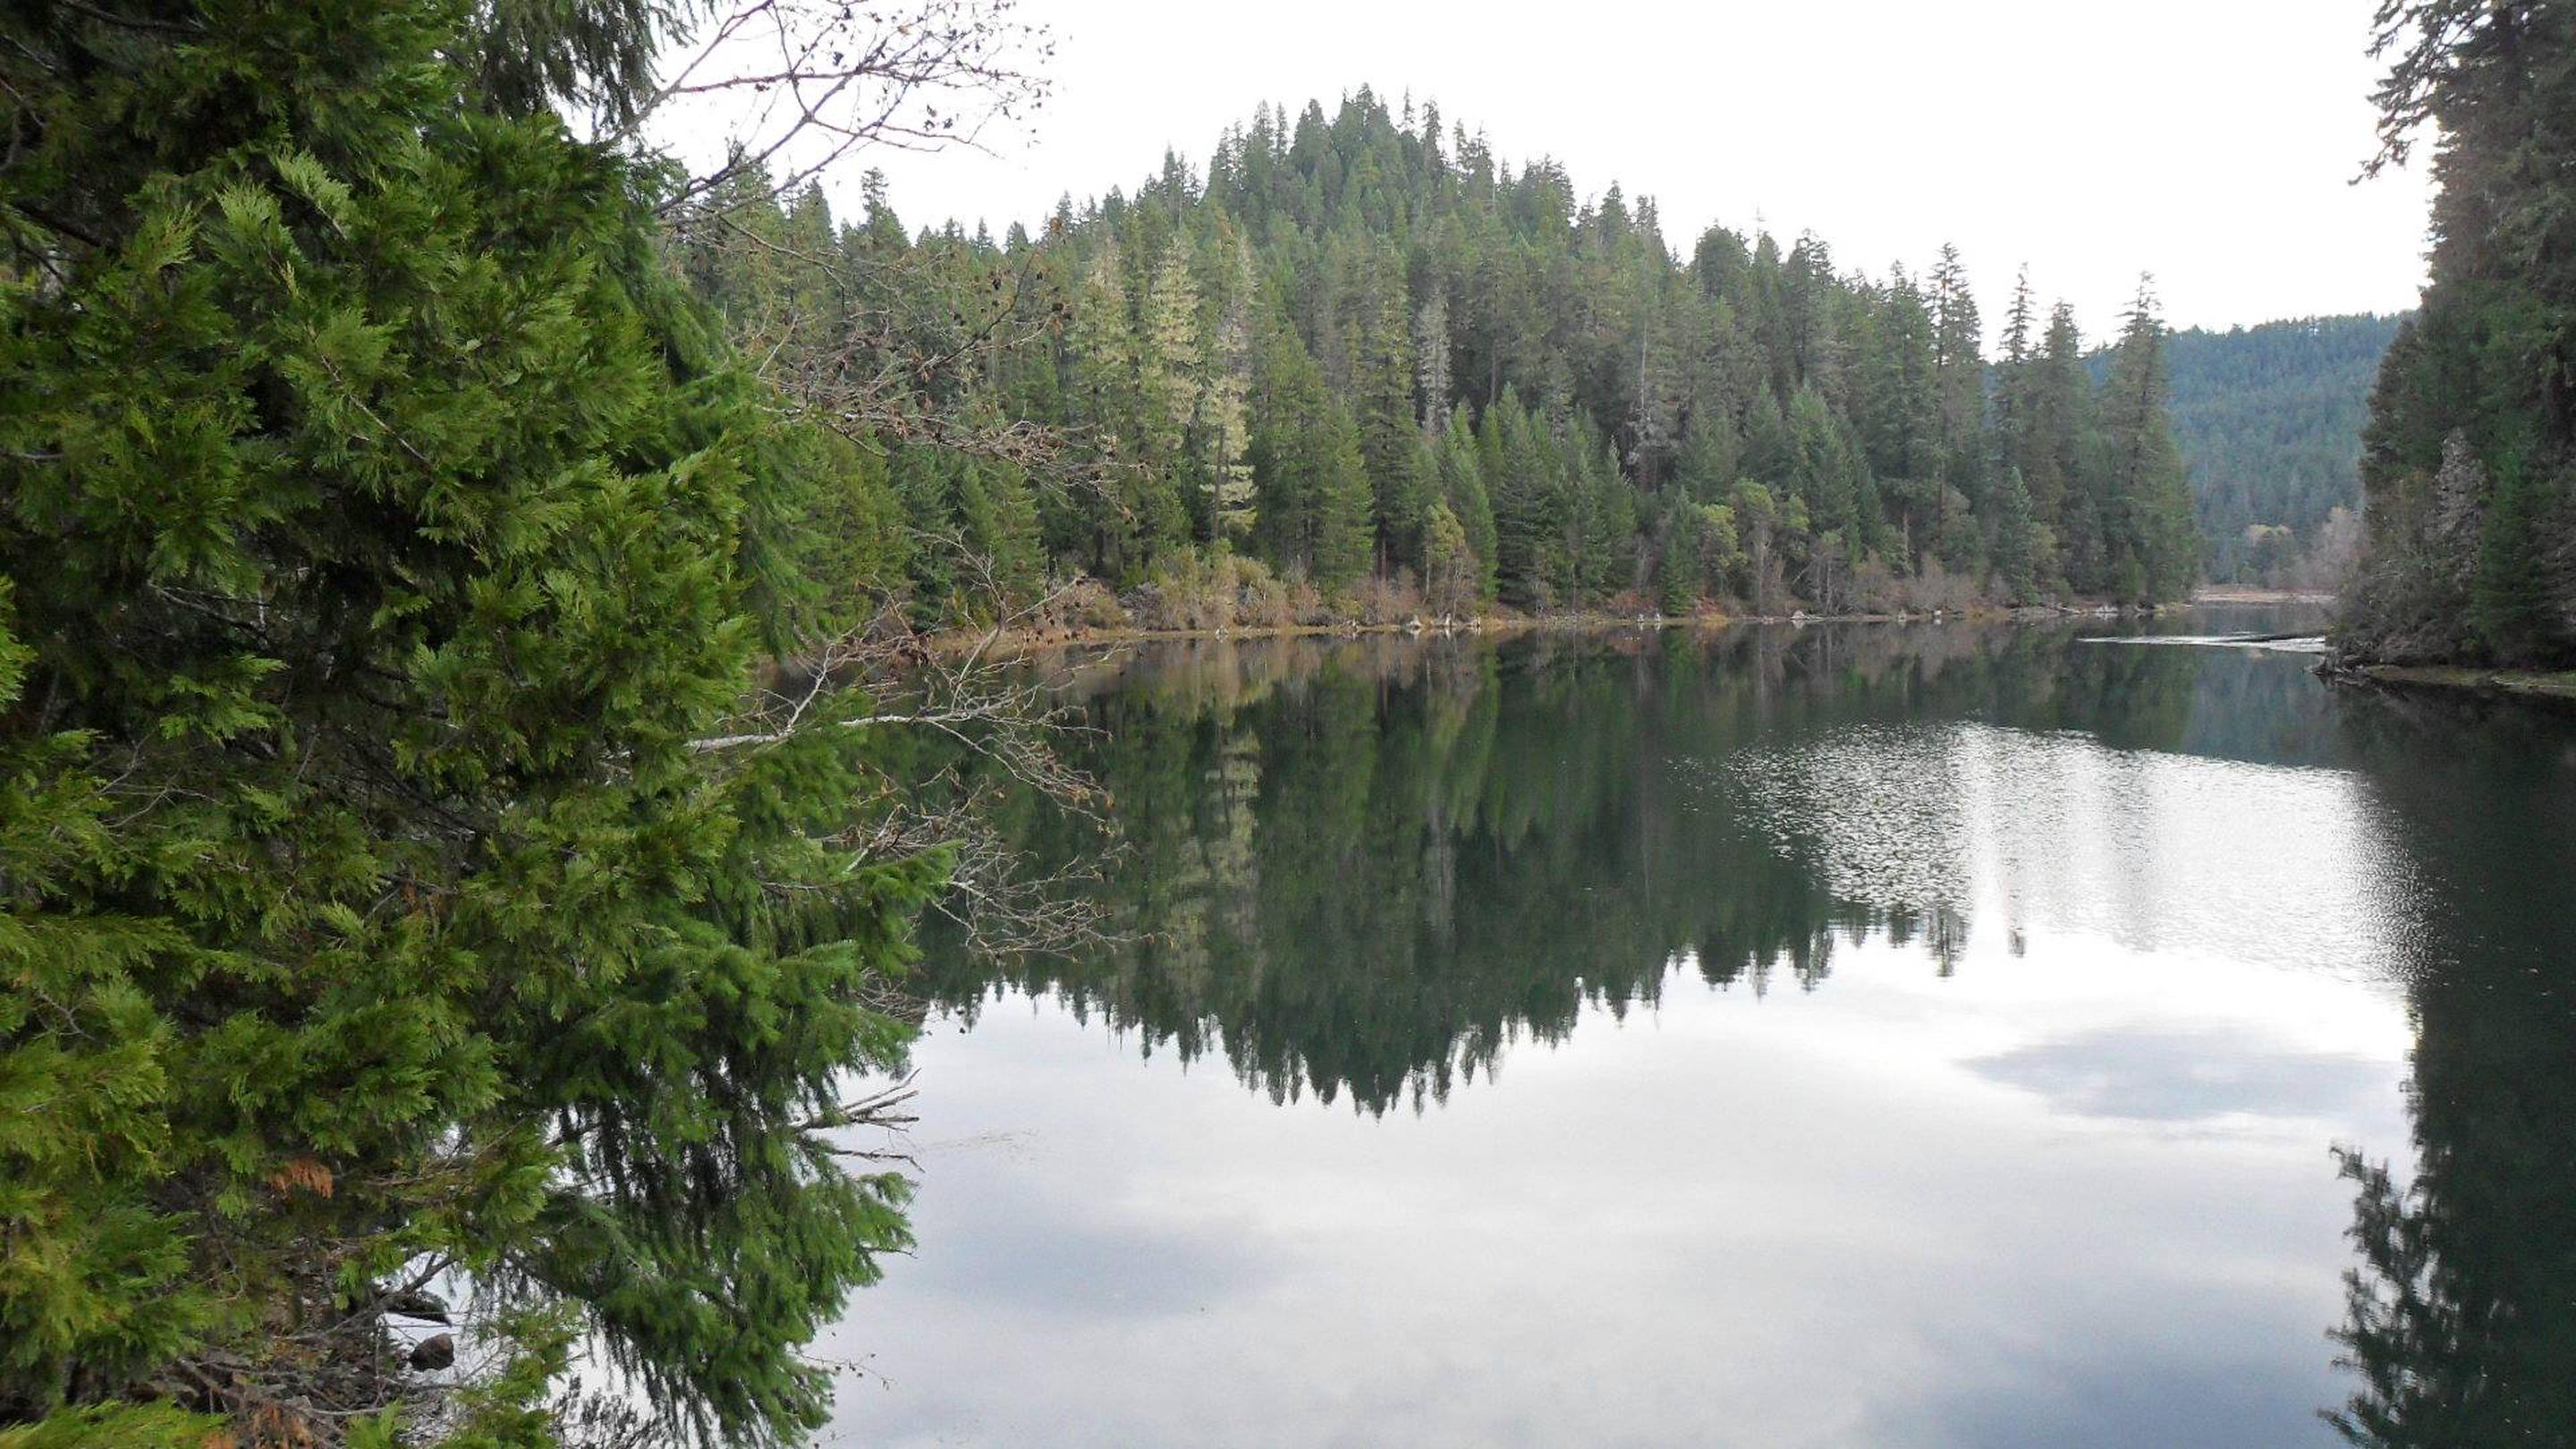 Nearby Toketee Lake